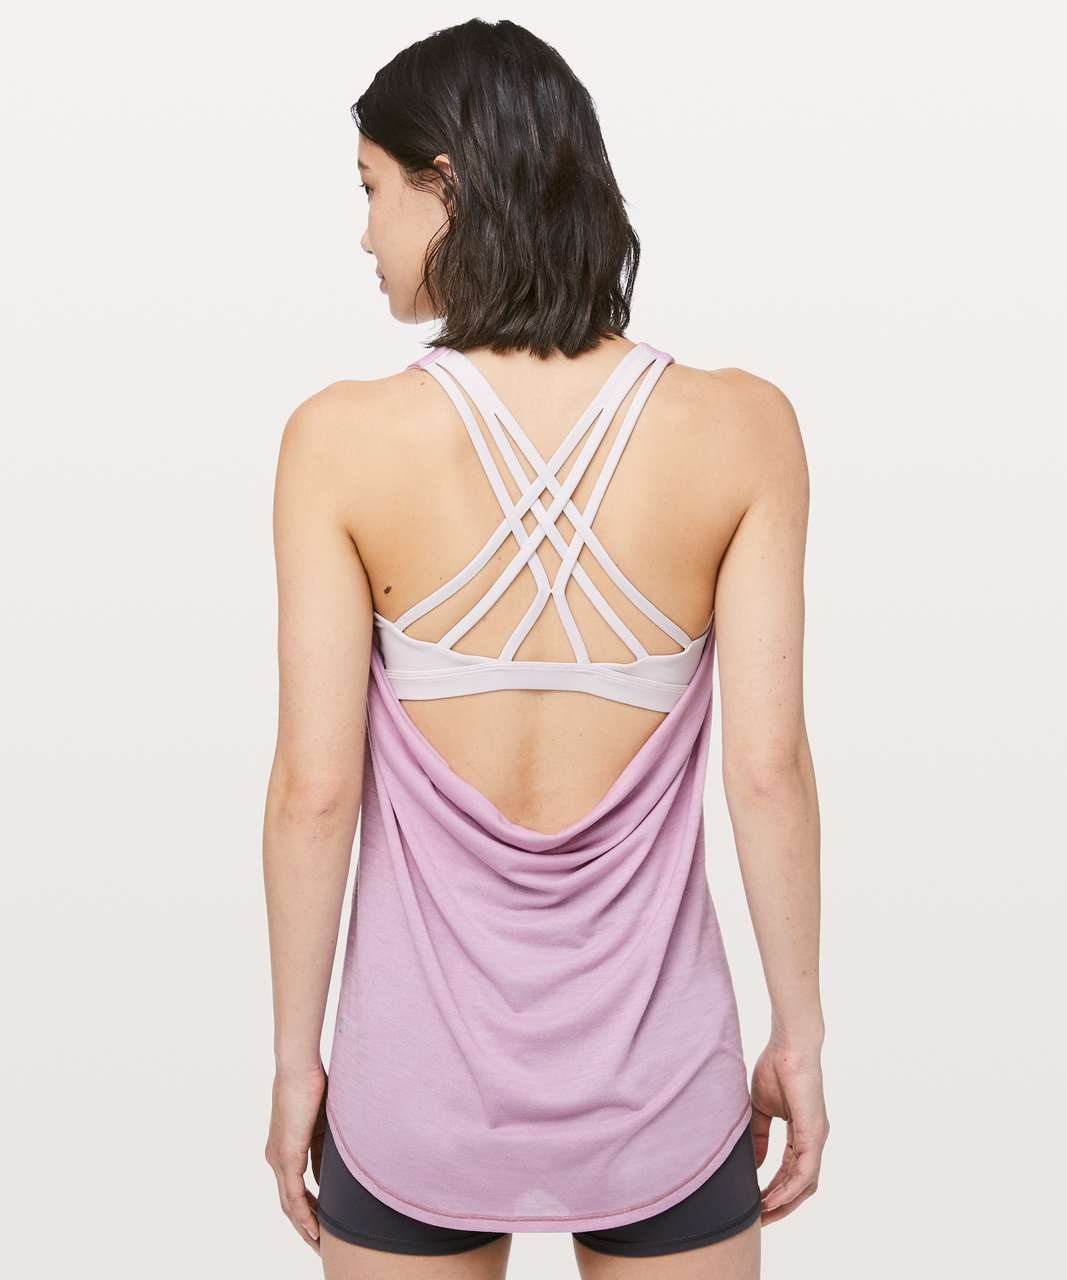 Lululemon Slay The Studio 2-In-1 Tank *Medium Support B/C Cup - Heathered Antoinette / Light Chrome